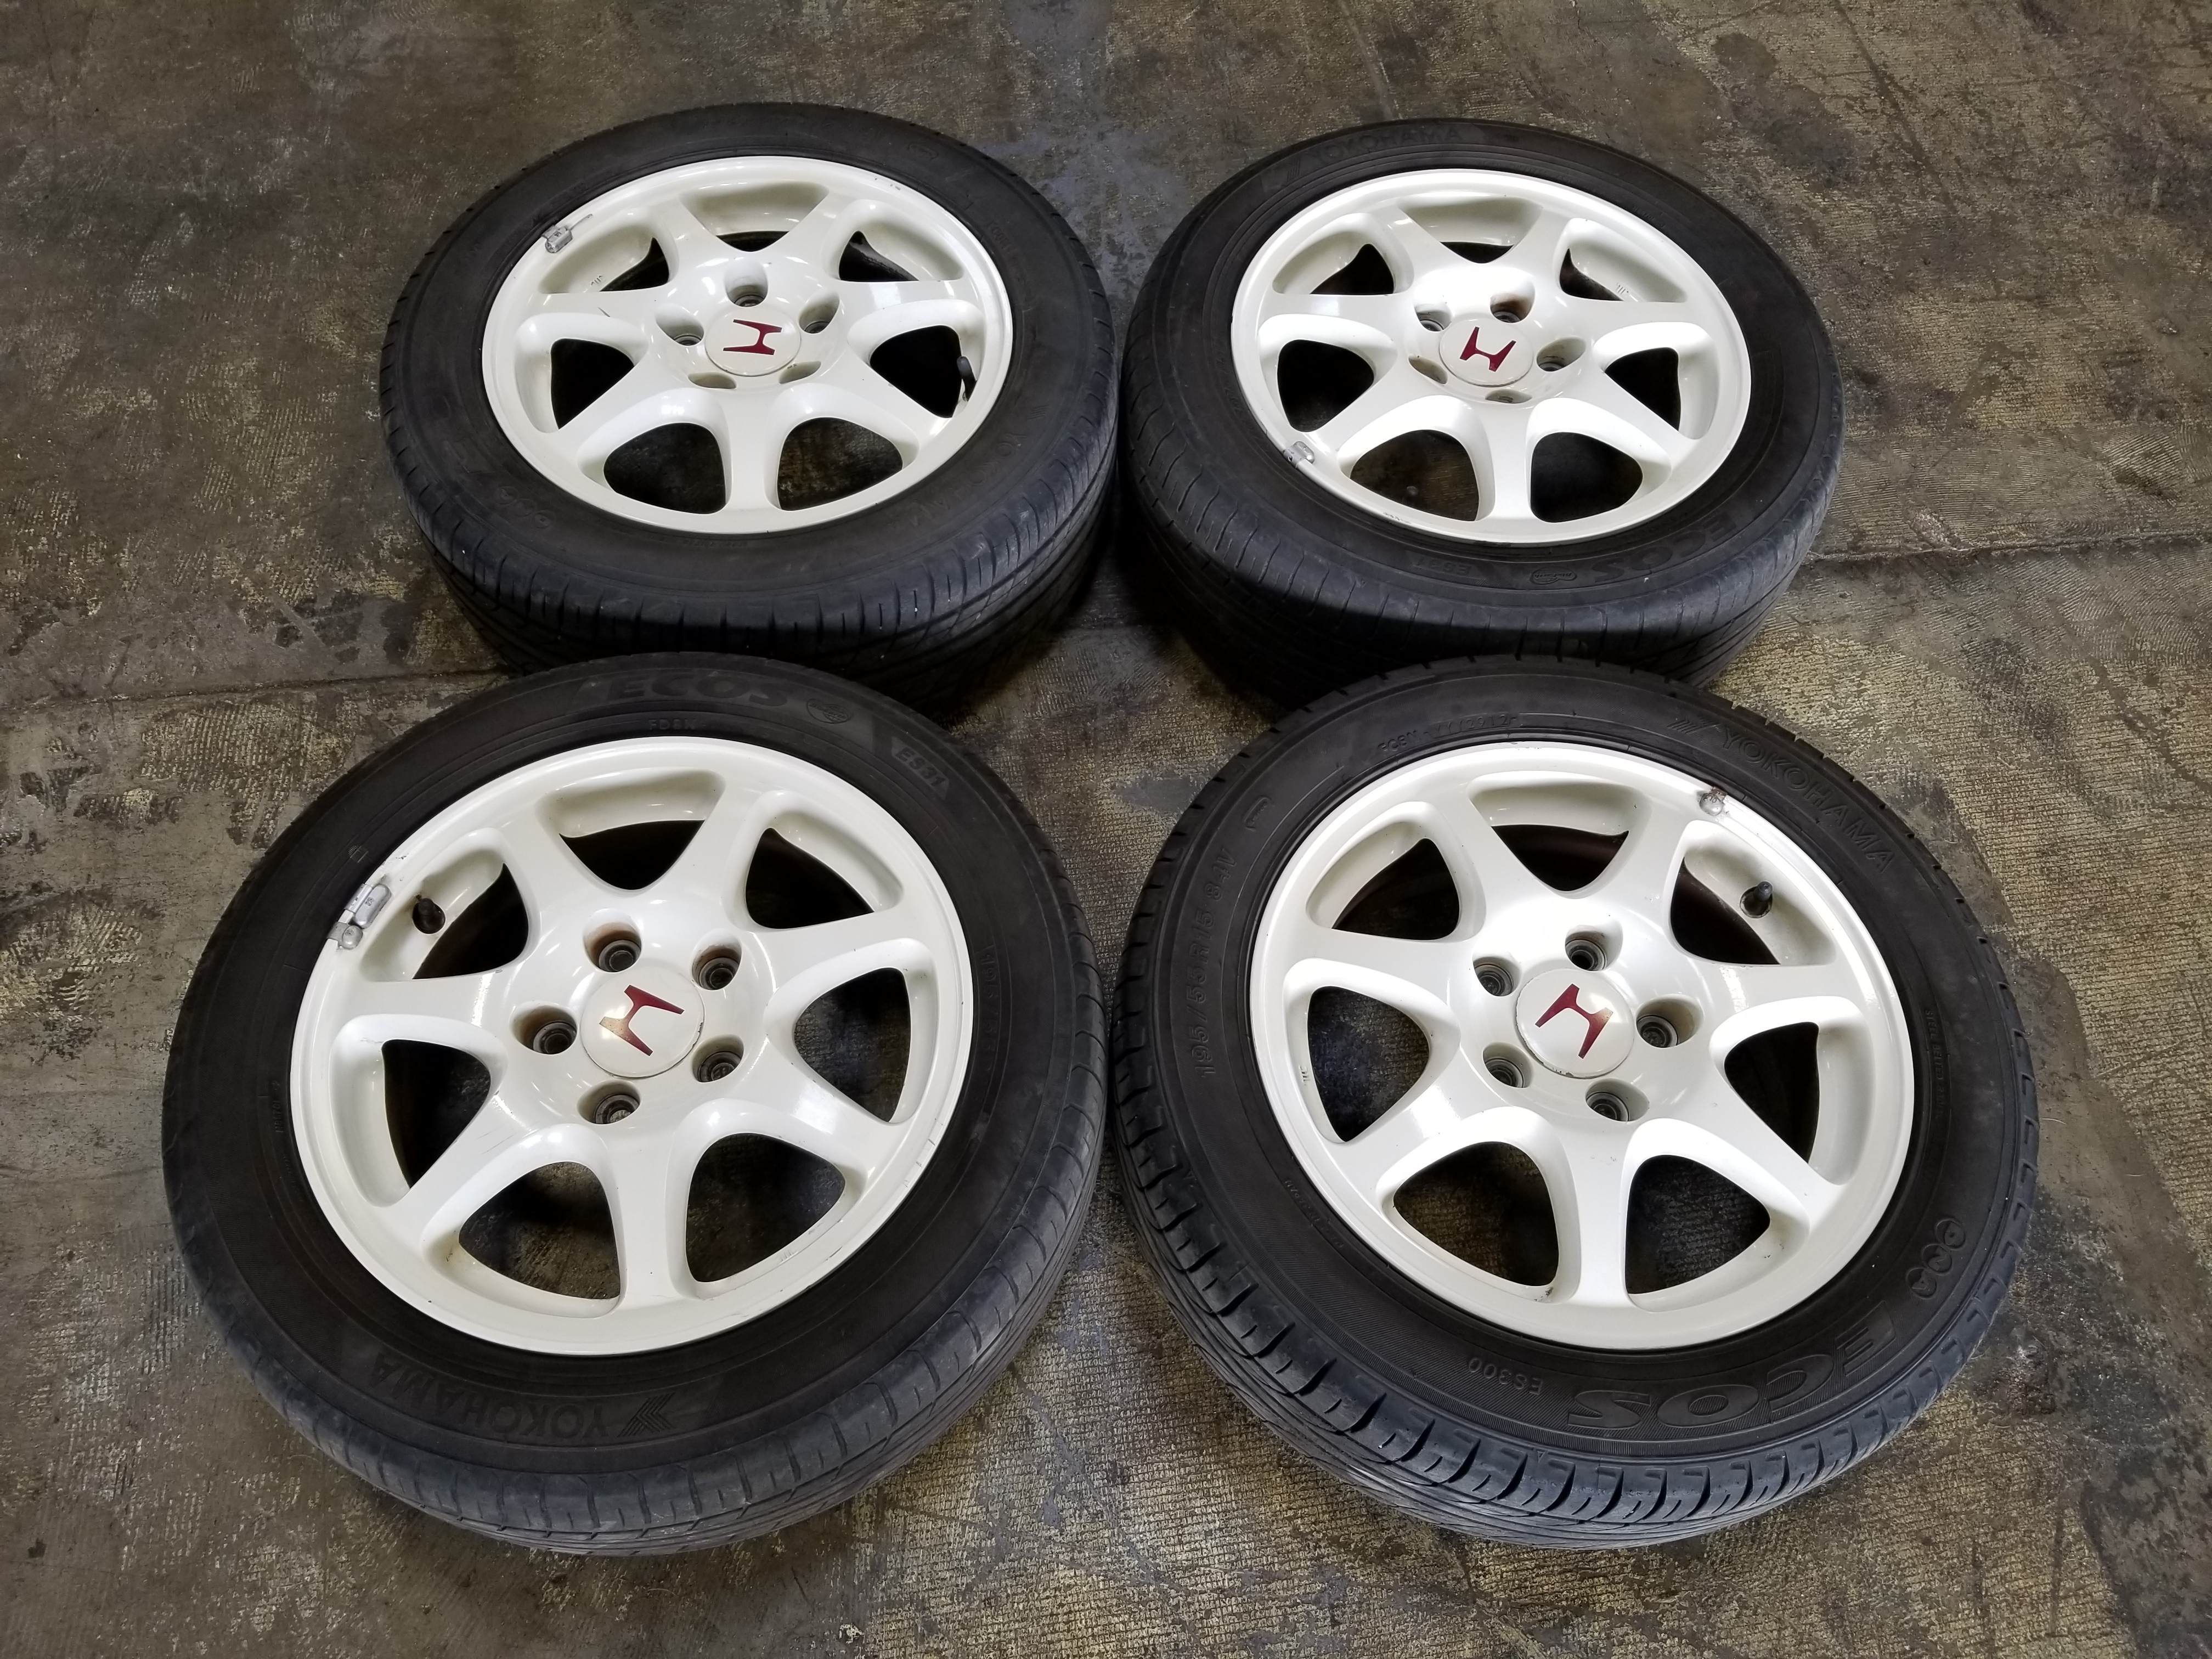 Honda S2000 Price >> EK9 JDM Honda Civic Type-R Wheels EK9 CTR Rims 5×114.3 ...